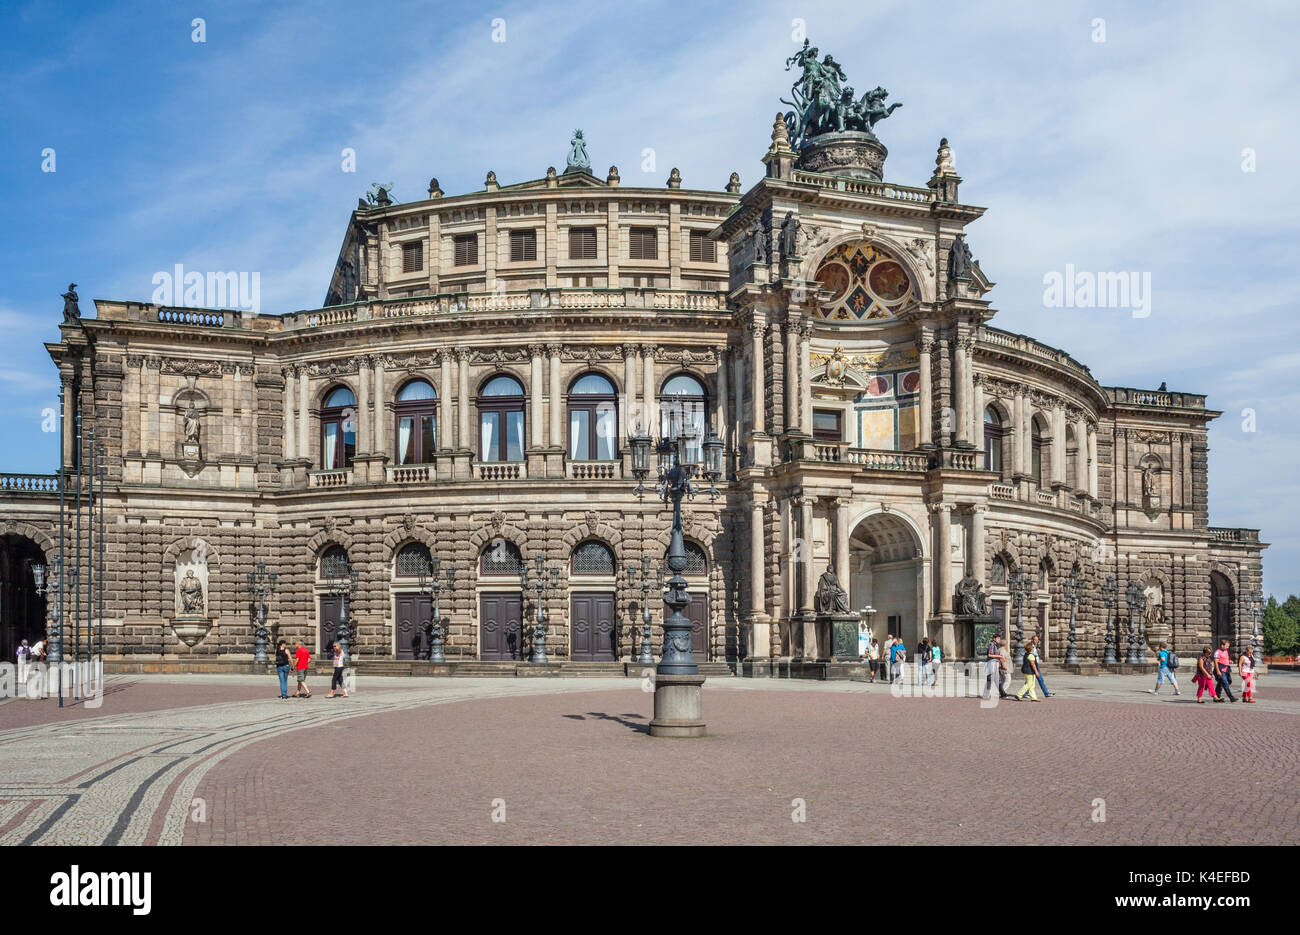 Germany, Saxony, Dresden, view the Dresden Opera House, better known as Semperoper, designed by the prominent Neo-Renaissance architect Gottfried Semp - Stock Image